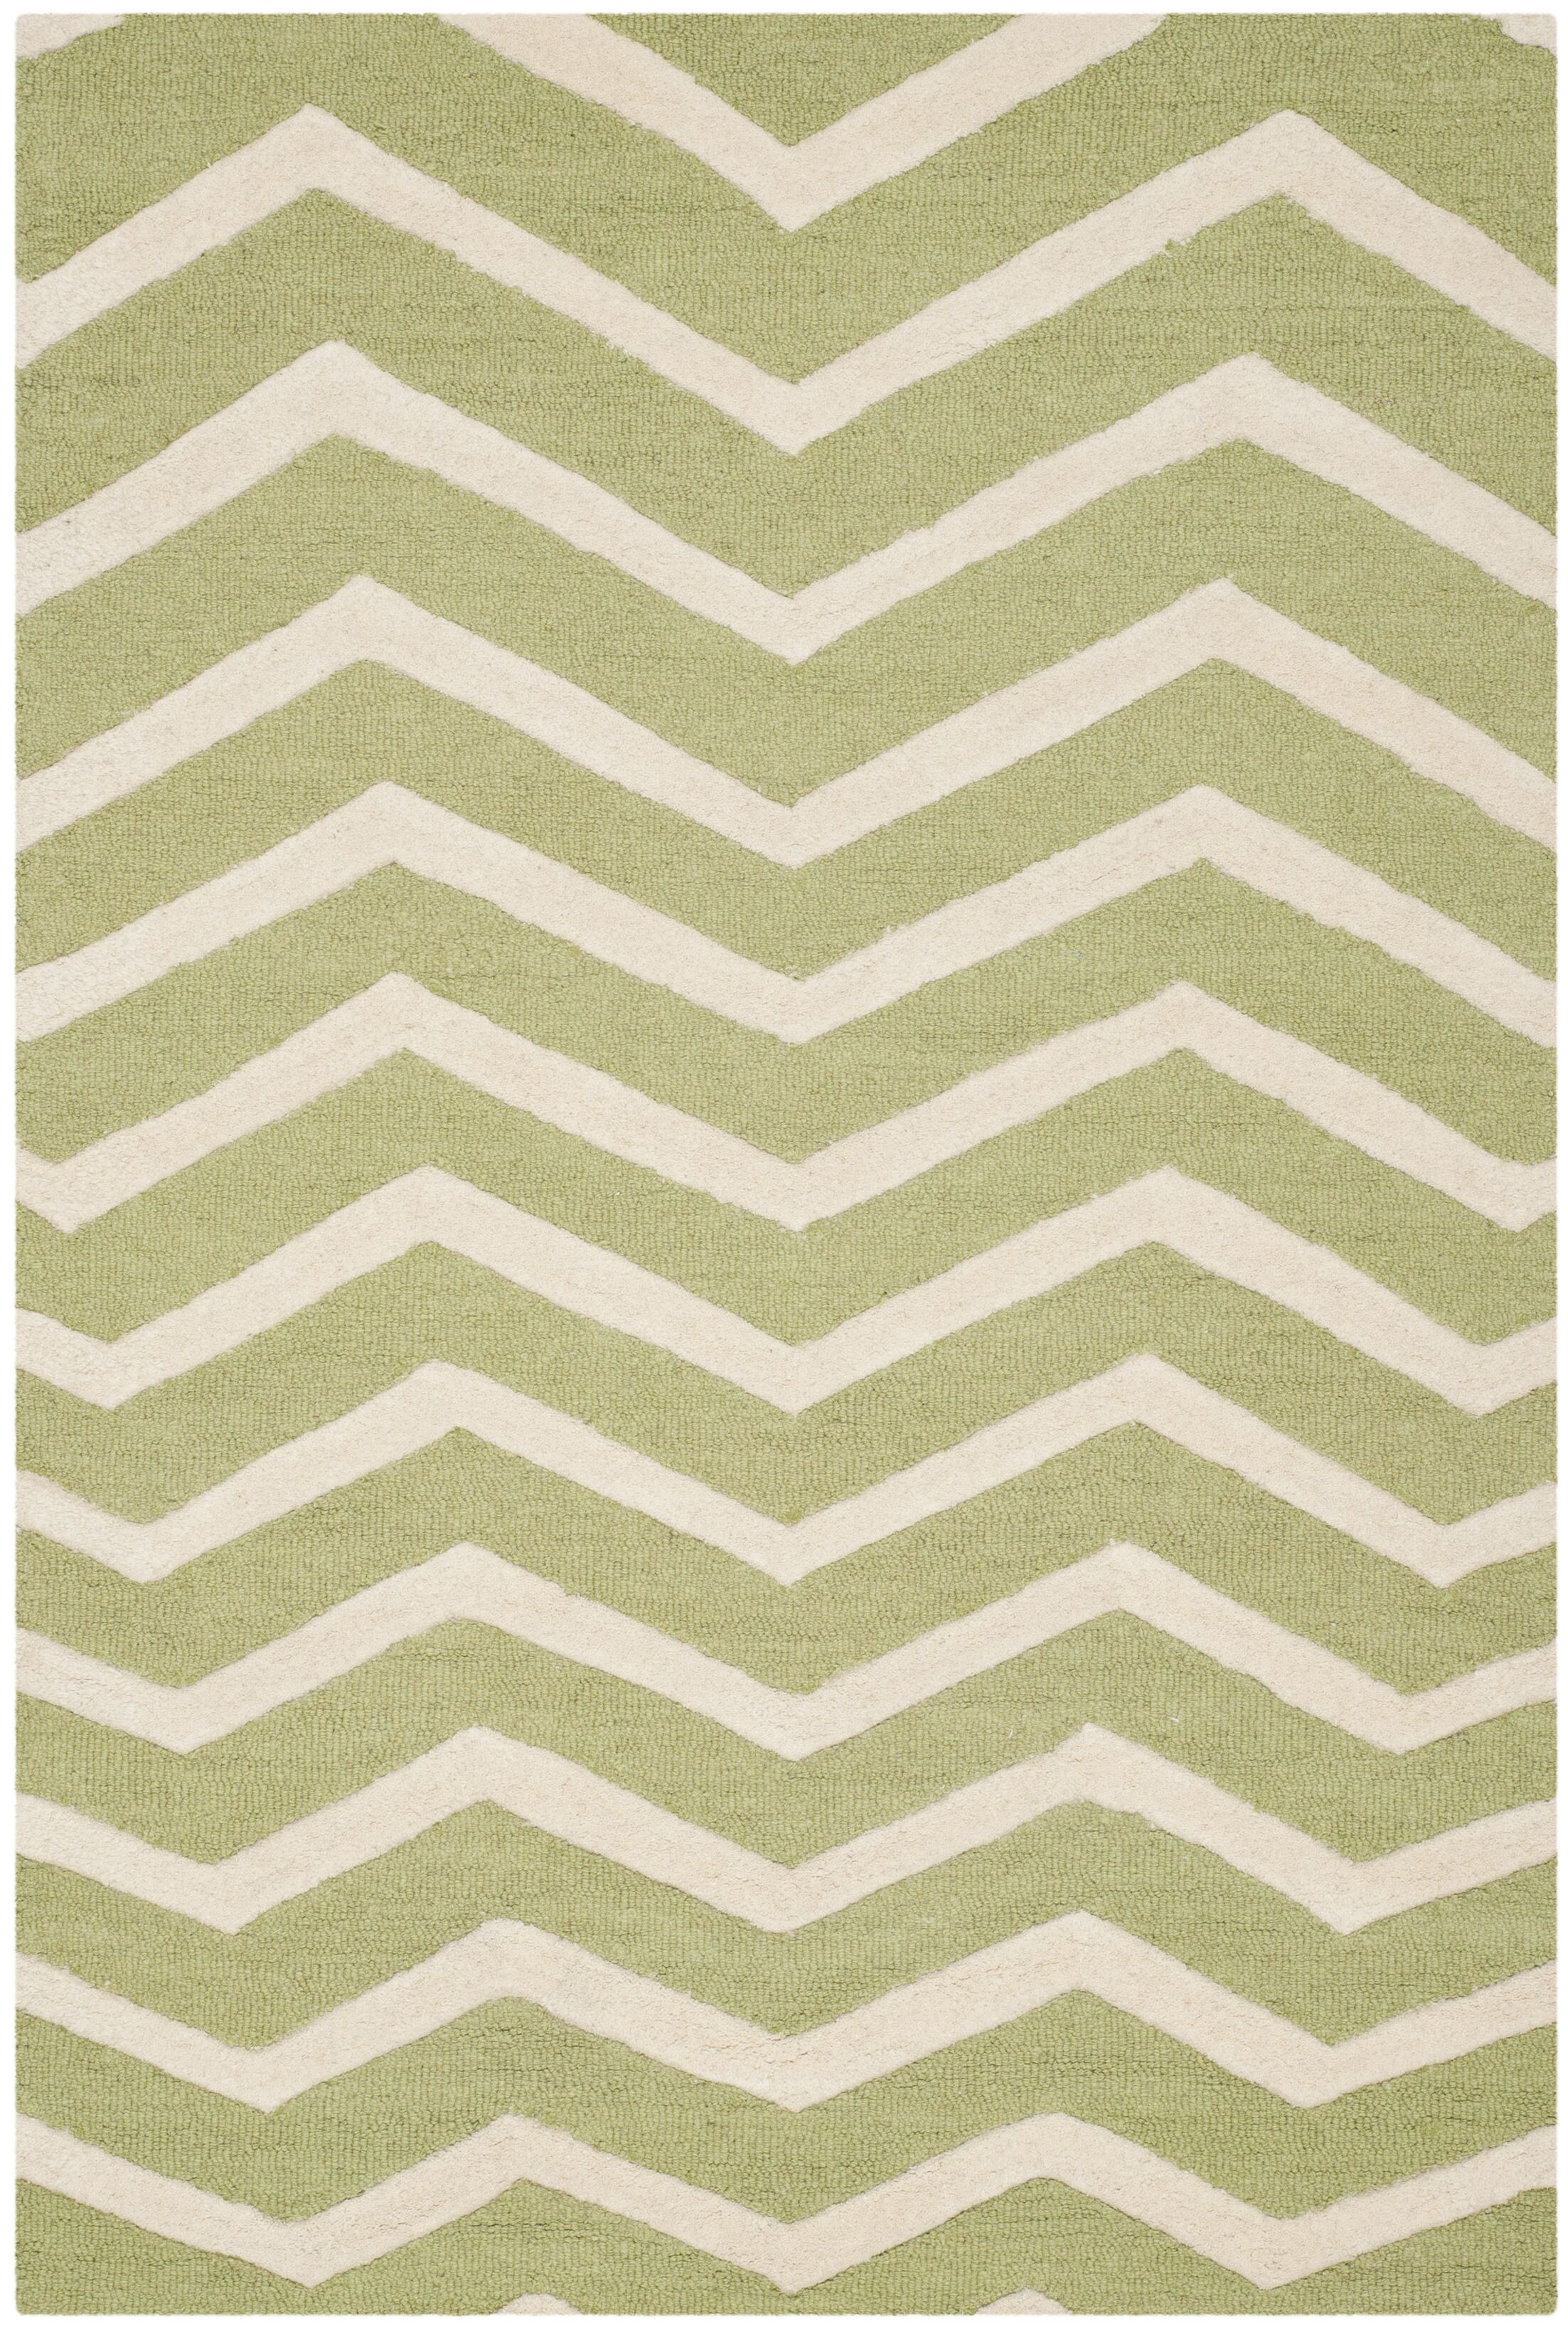 Charlenne Hand-Tufted Wool Green/Ivory Area Rug Rug Size: Rectangle 5' x 8'